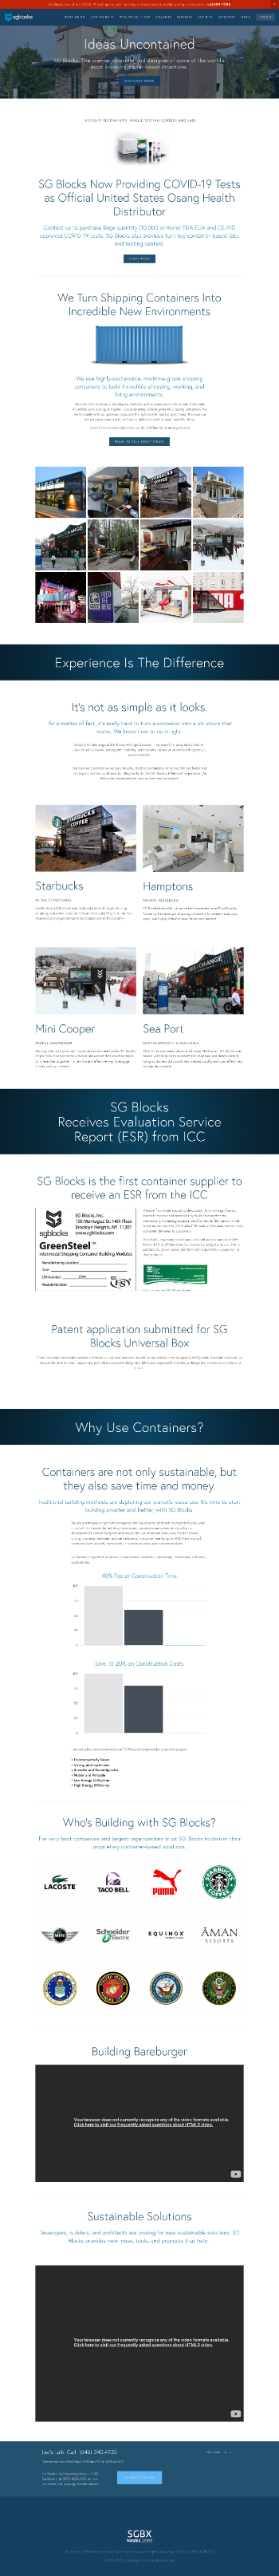 SG Blocks, Inc. Website Screenshot